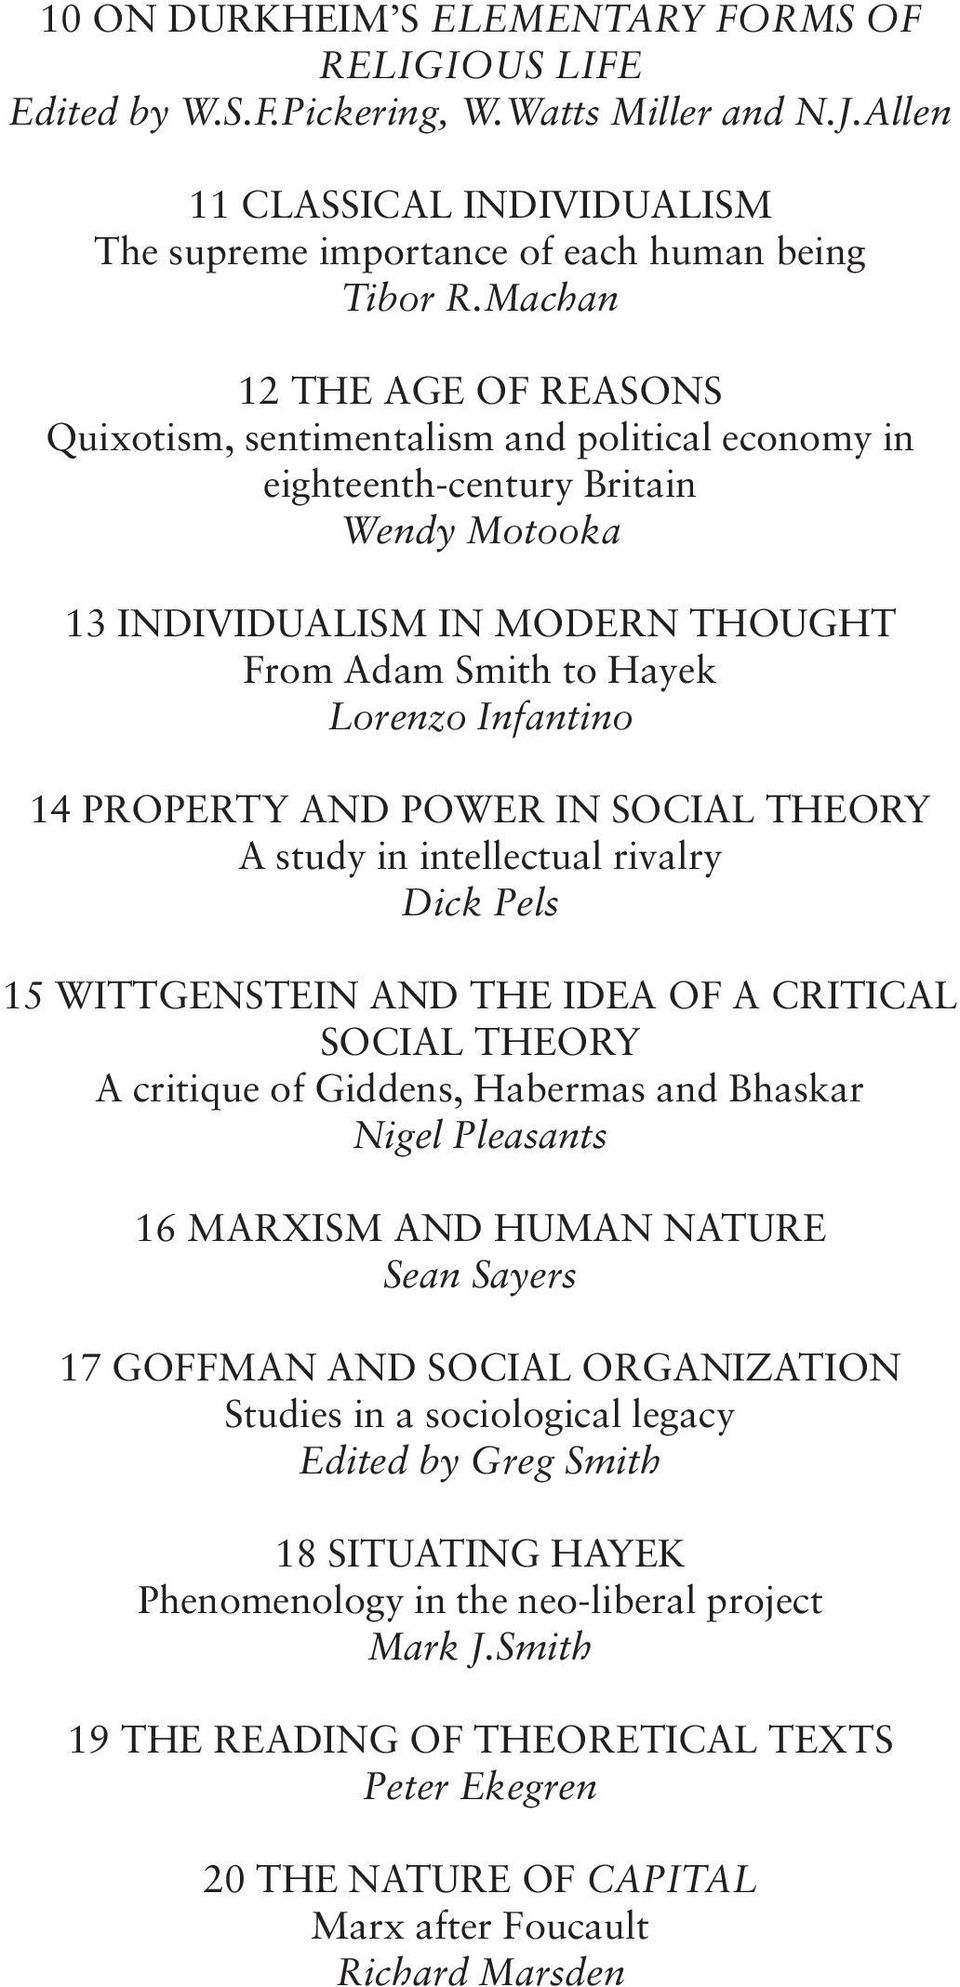 14 PROPERTY AND POWER IN SOCIAL THEORY A study in intellectual rivalry Dick Pels 15 WITTGENSTEIN AND THE IDEA OF A CRITICAL SOCIAL THEORY A critique of Giddens, Habermas and Bhaskar Nigel Pleasants